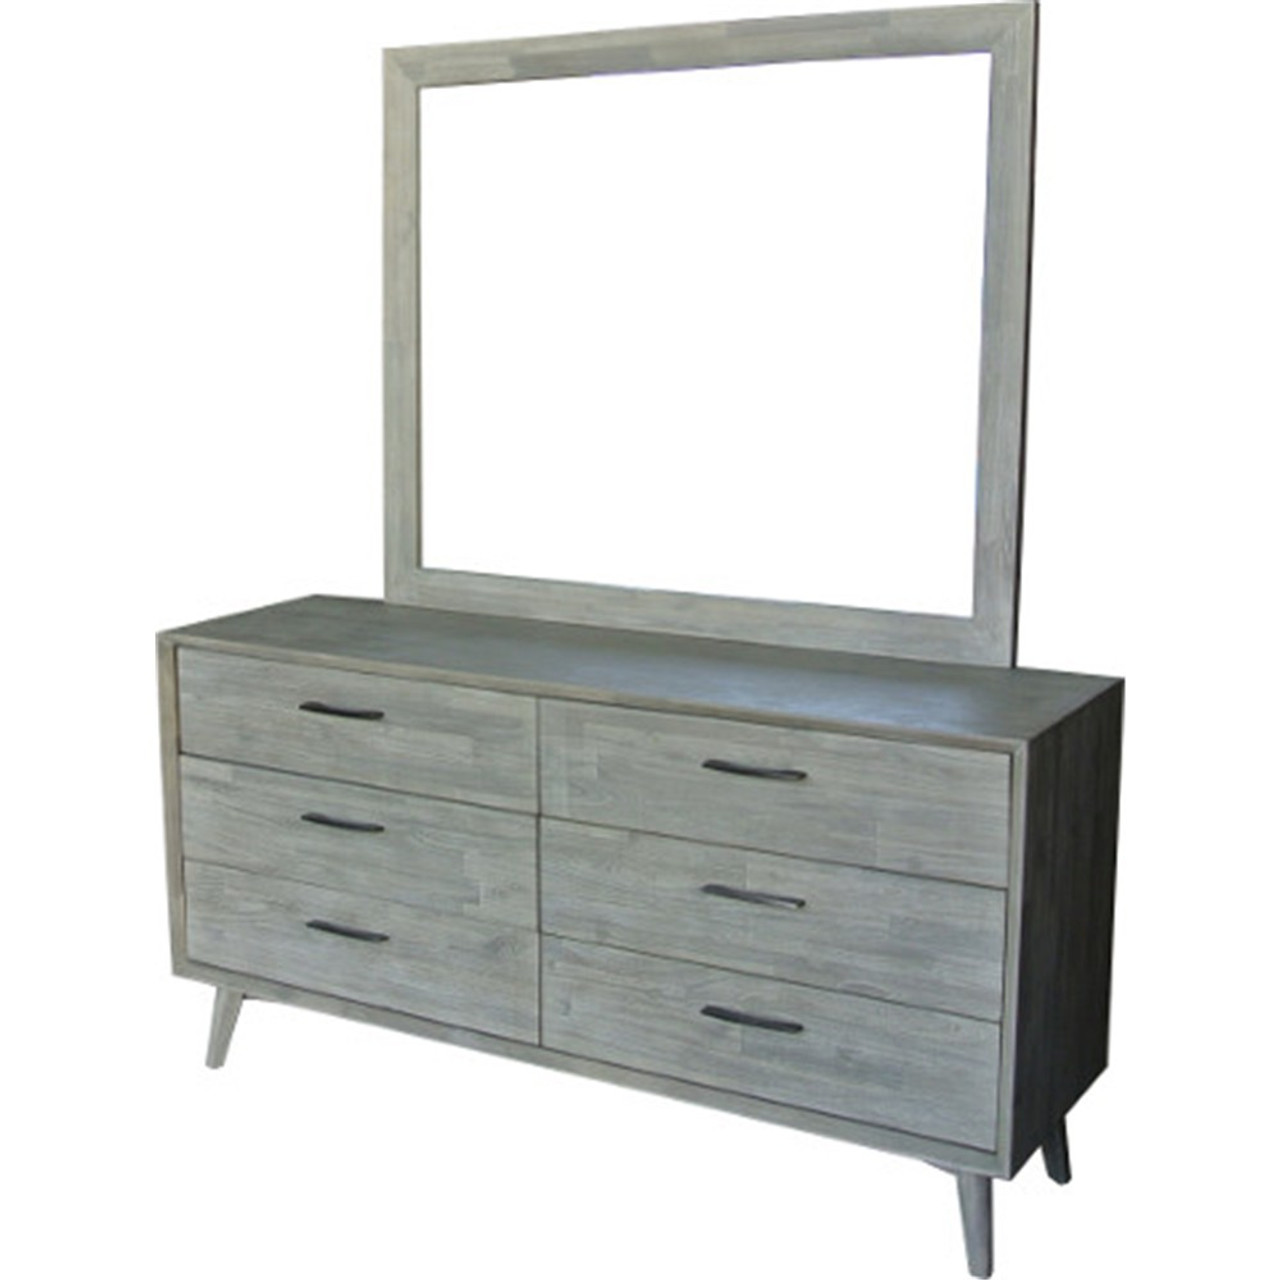 Seattle 6 Drawer Dresser Mirror Sandblast Light Grey My Furniture Store Furniture And Bedding Super Store Australia